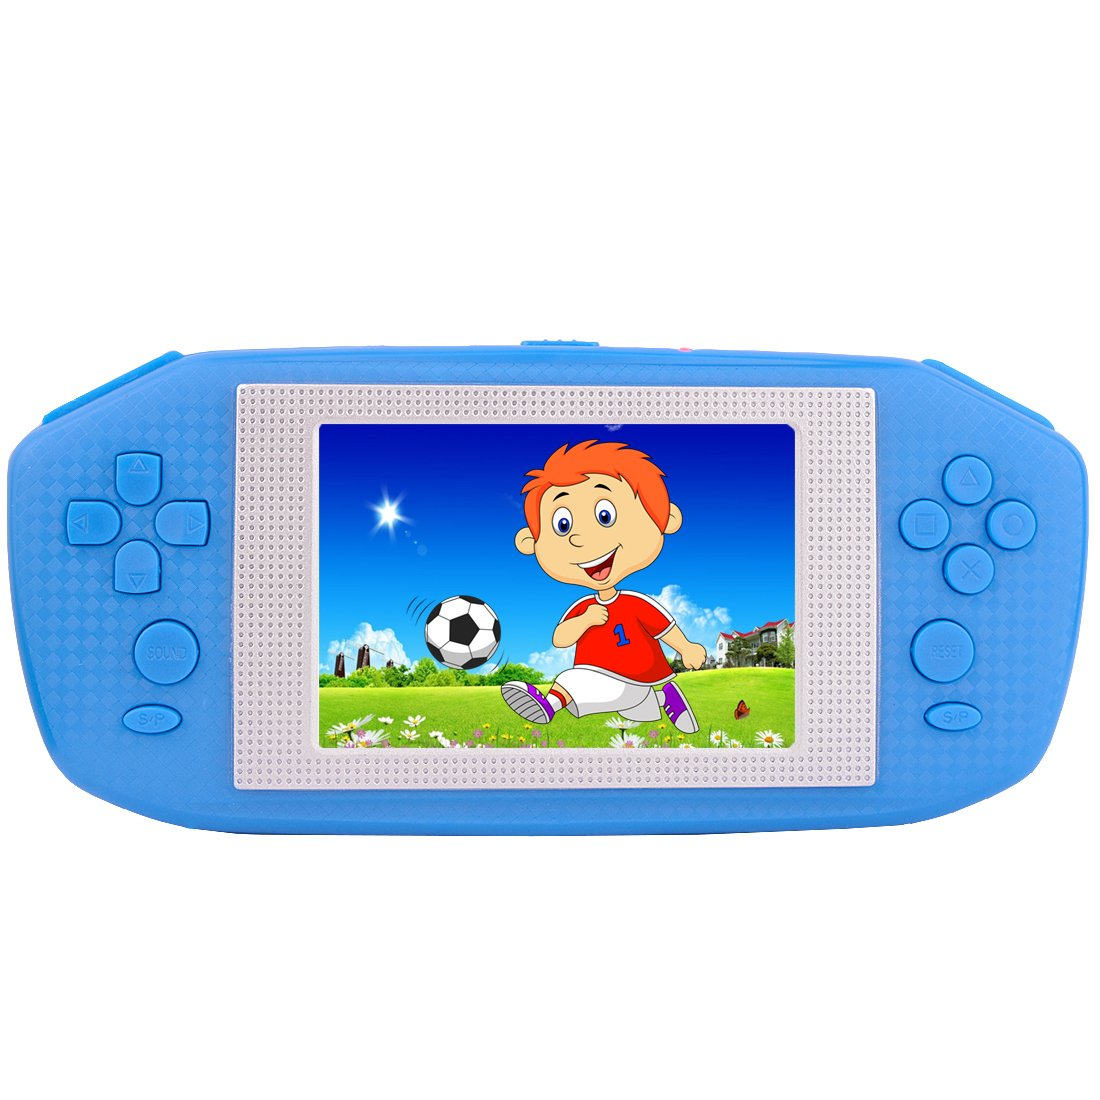 ZHISHAN Portable Handheld Game Console Gaming Player Birthday Gift for Kids Built in 416 Classic Retro Games with 3.5'' LCD Big Screen (Blue)